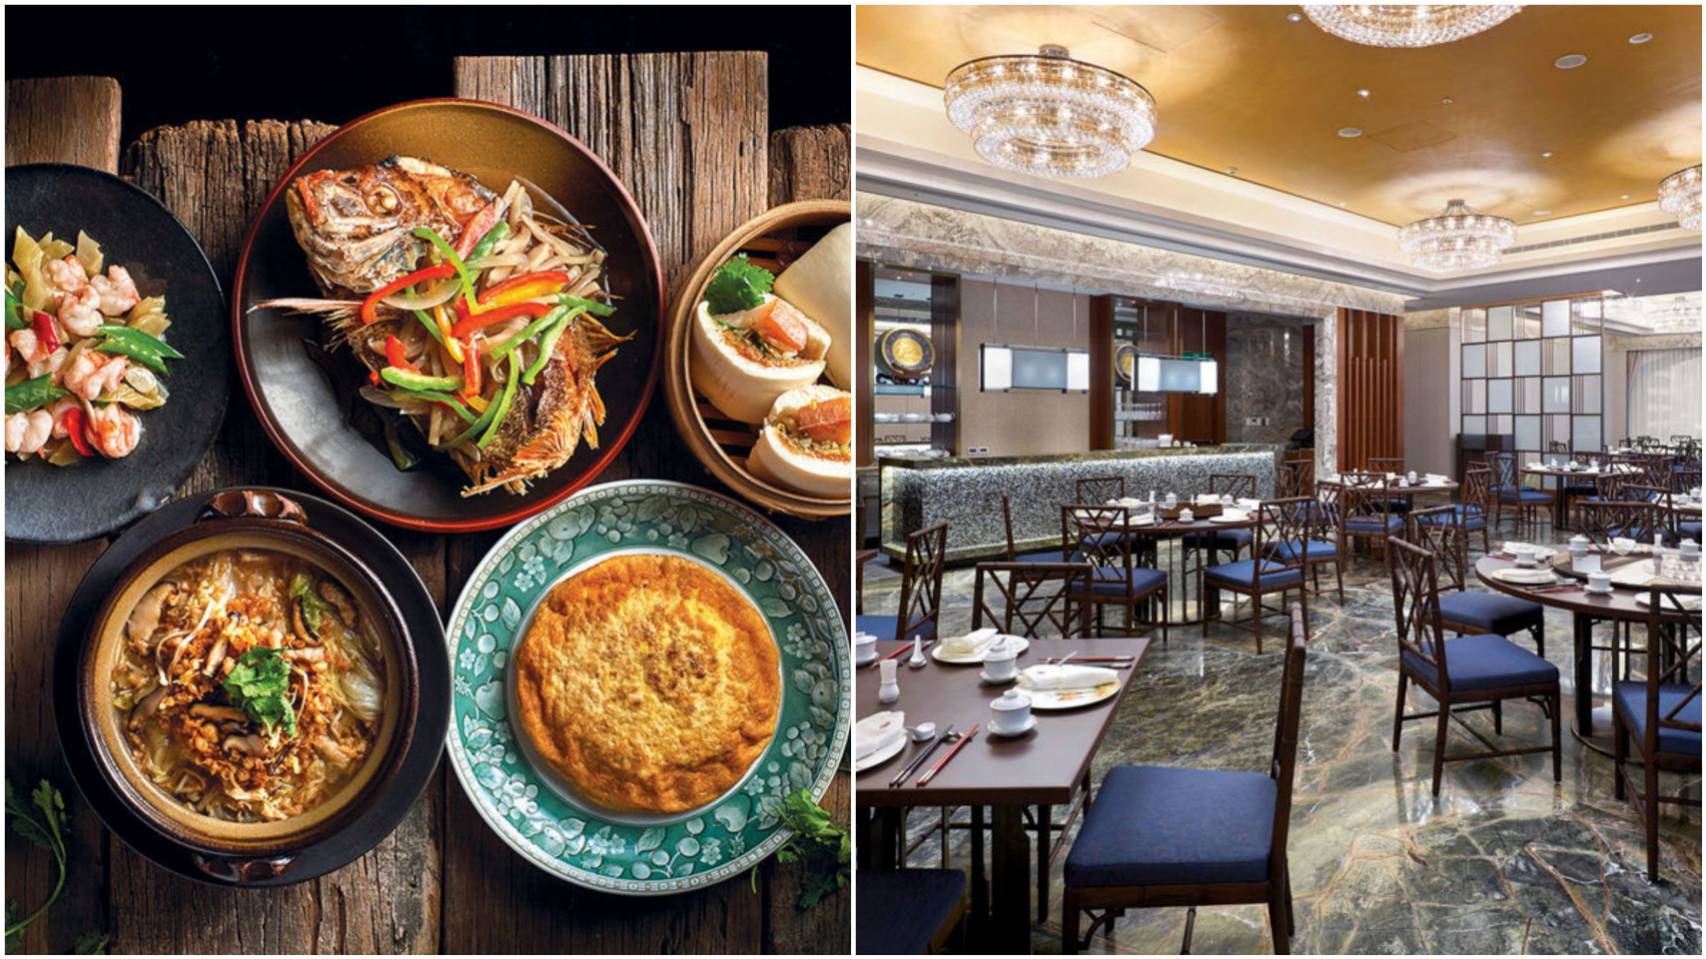 Taiwanese restaurant Mipon, located in the Grand Mayfull Hotel, focuses on classic home-style Taiwanese cooking with a modern twist. (Photo by Mipon)